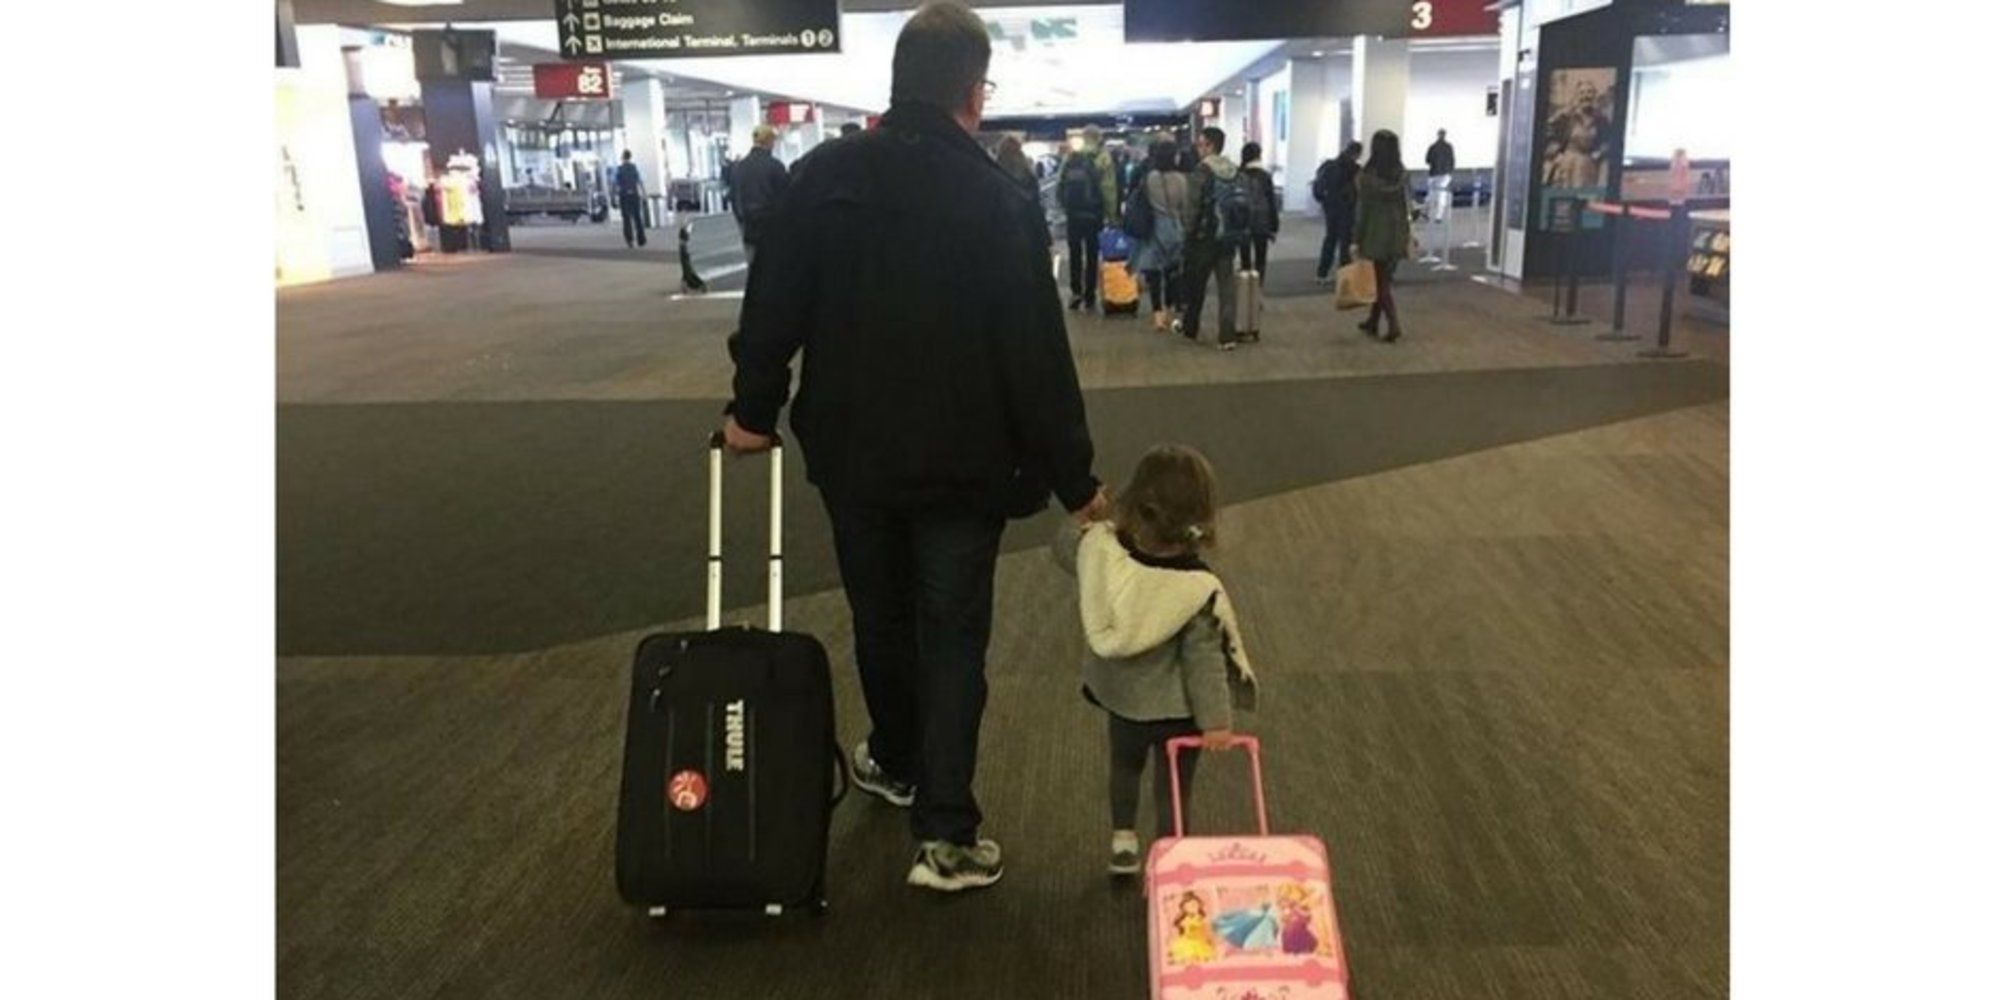 Dad With 350,000 Airline Miles Helps Families Who Can't Afford Holiday Travel | The Huffington Post